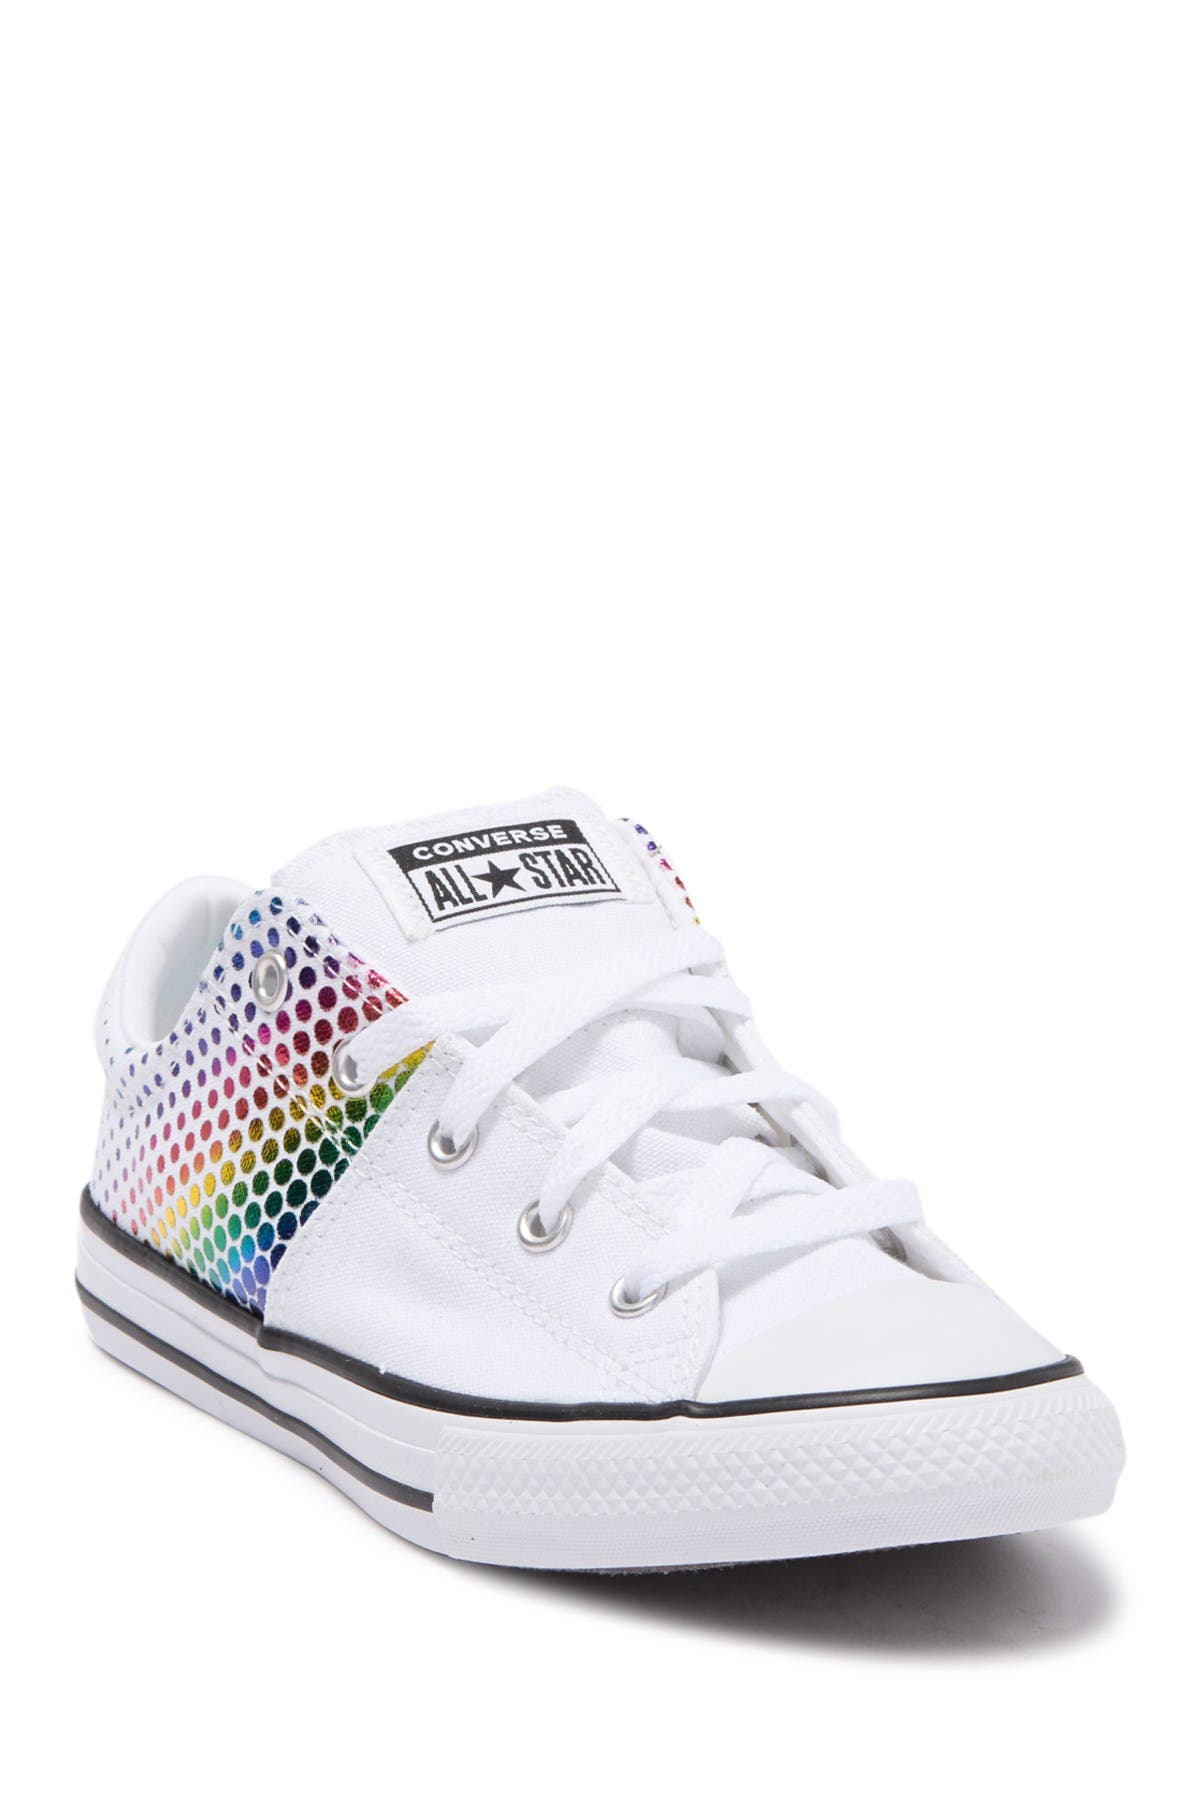 Image of Converse Chuck Taylor All Star Madison Oxford Sneaker